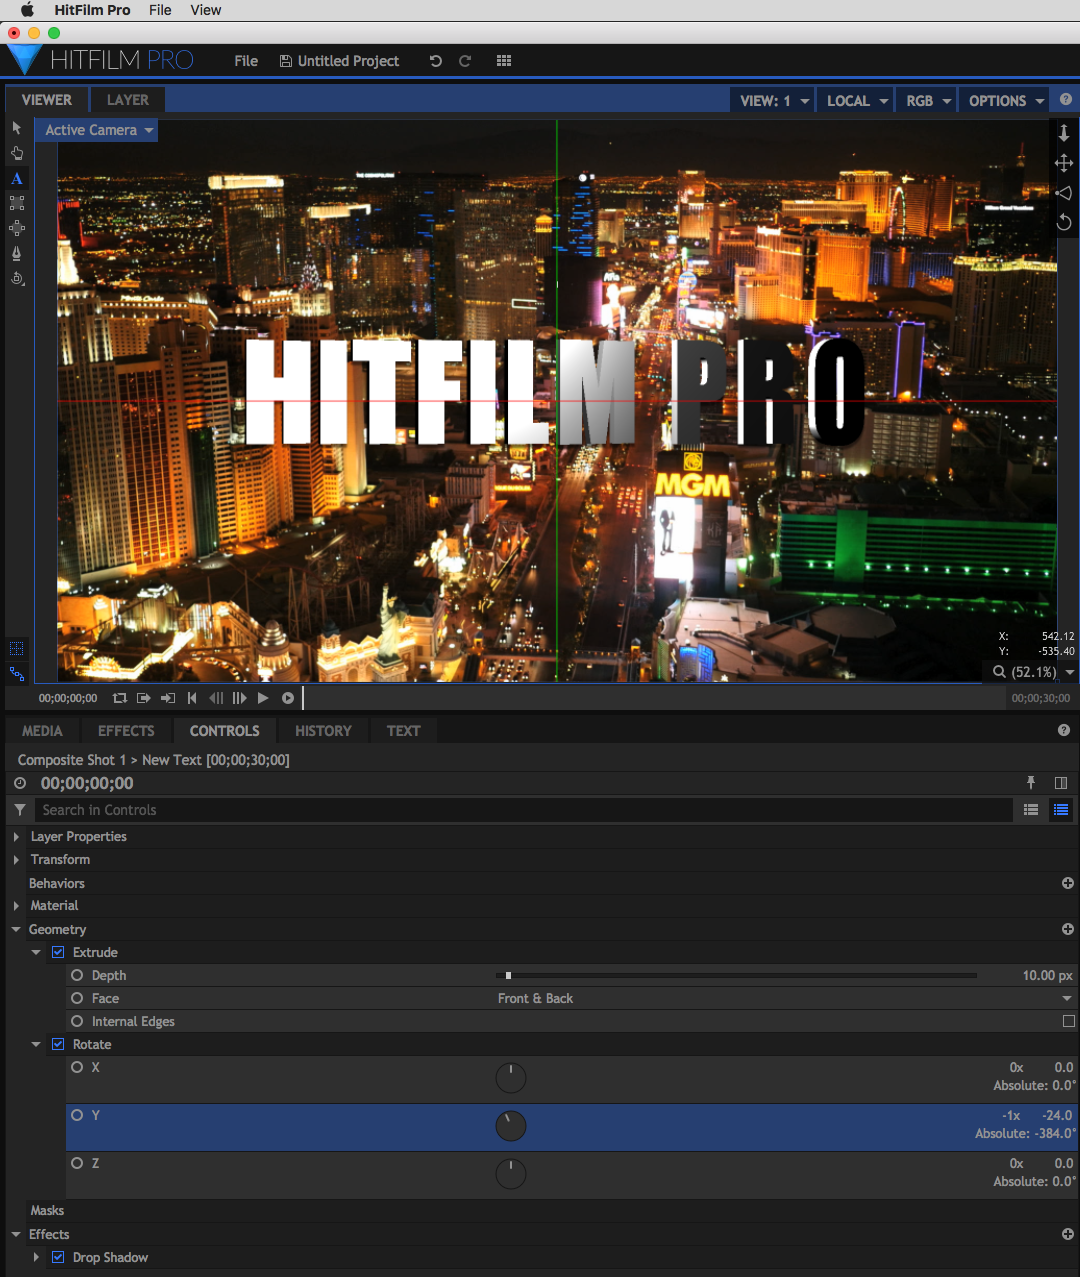 New Text Features in HitFilm Pro 2018